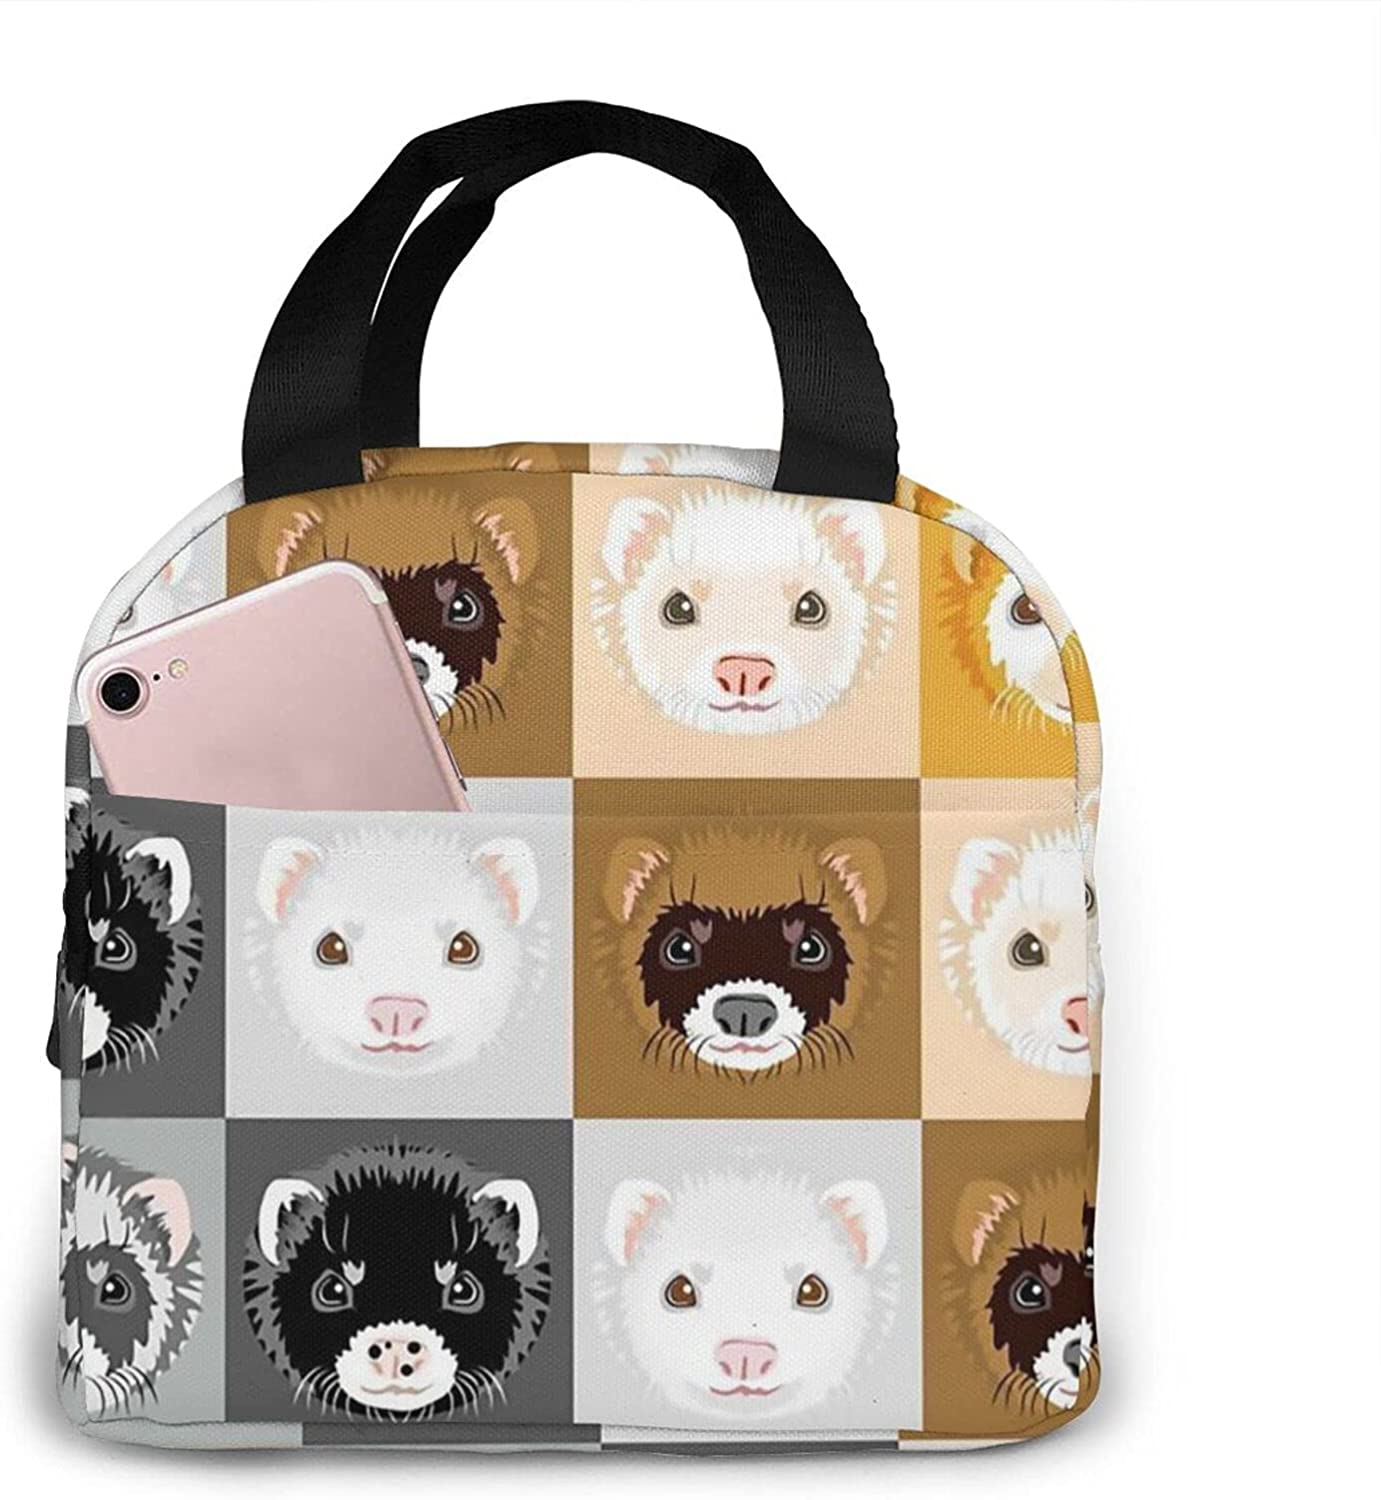 Free Shipping New Diagonal Ferret Seasonal Wrap Introduction Faces Stripe Lunch Box Tote Bag Thermal In